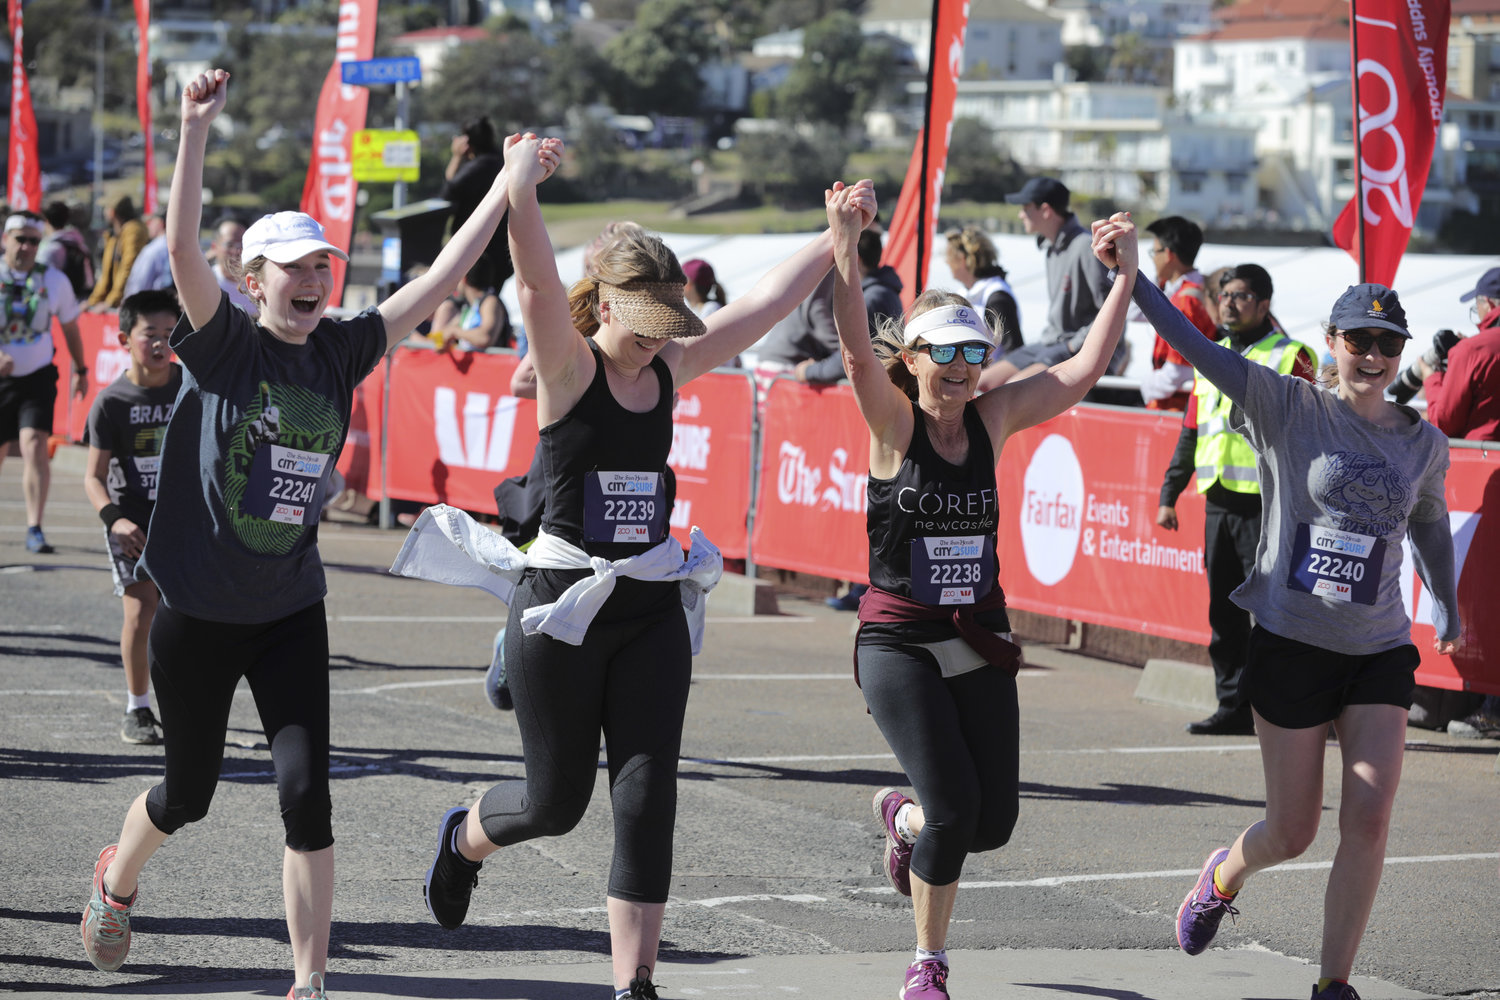 Team Packages — The Sun-Herald City2Surf presented by Westpac